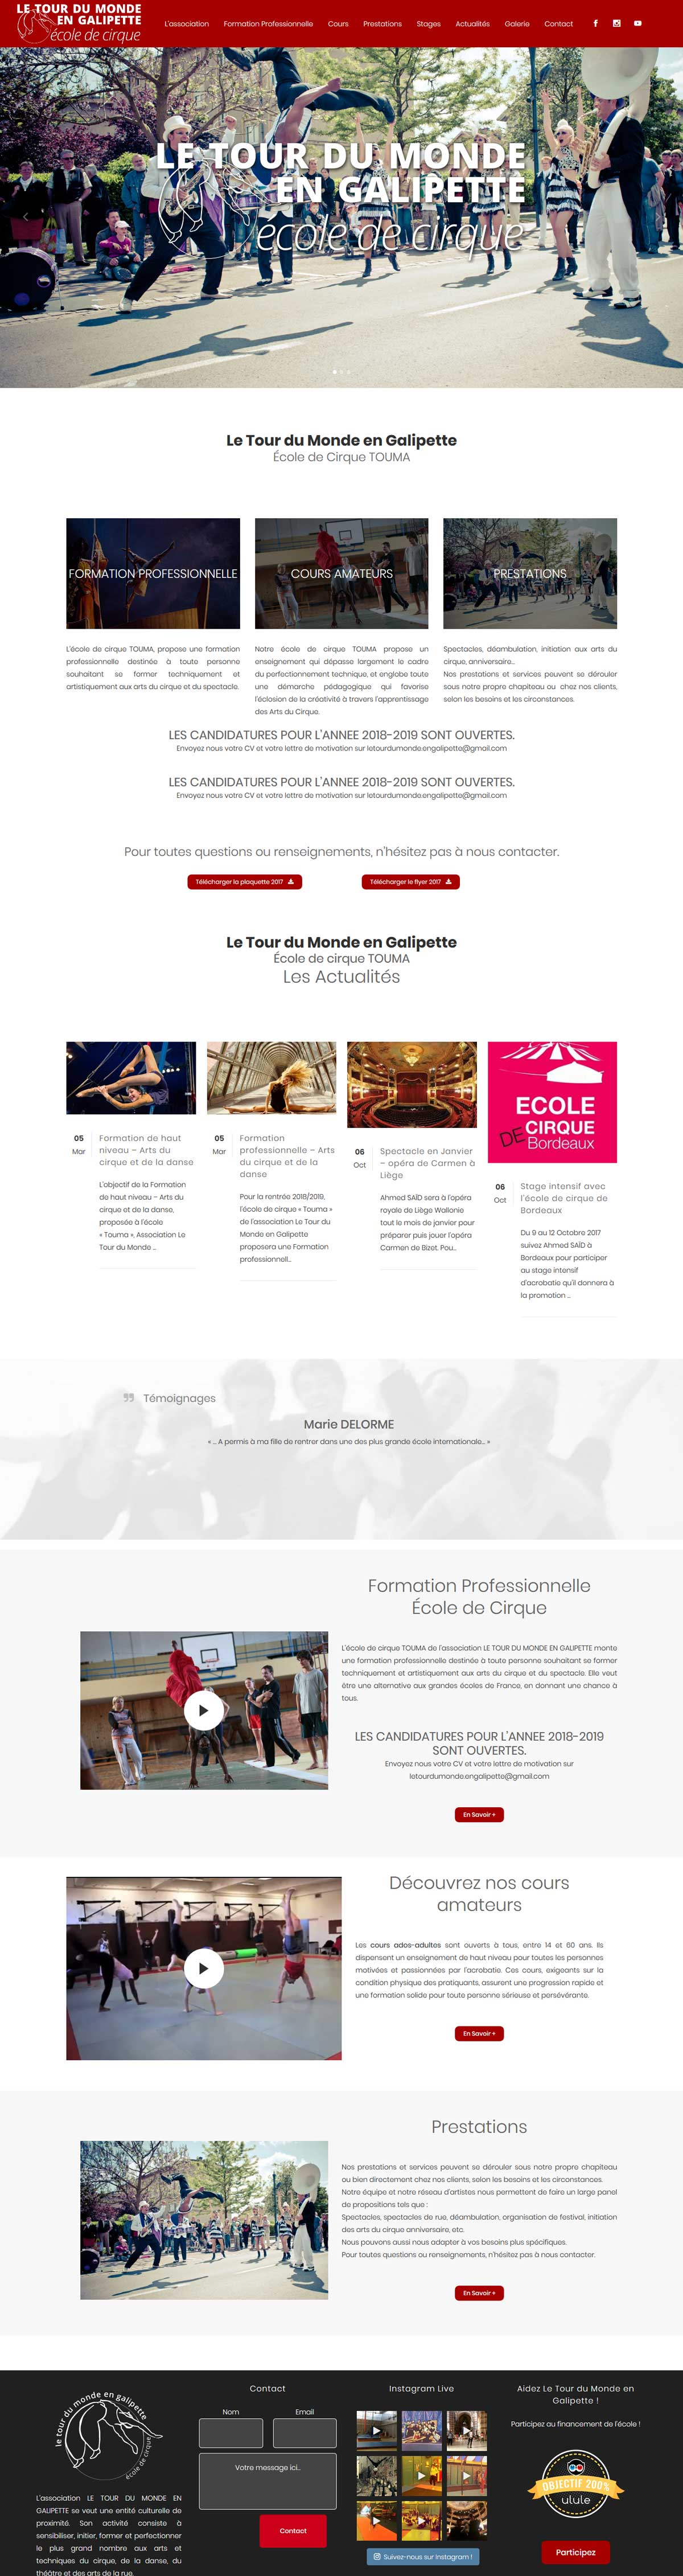 Agence-Web-Communication-digitale-Webdesign-Paris-LTMG-full